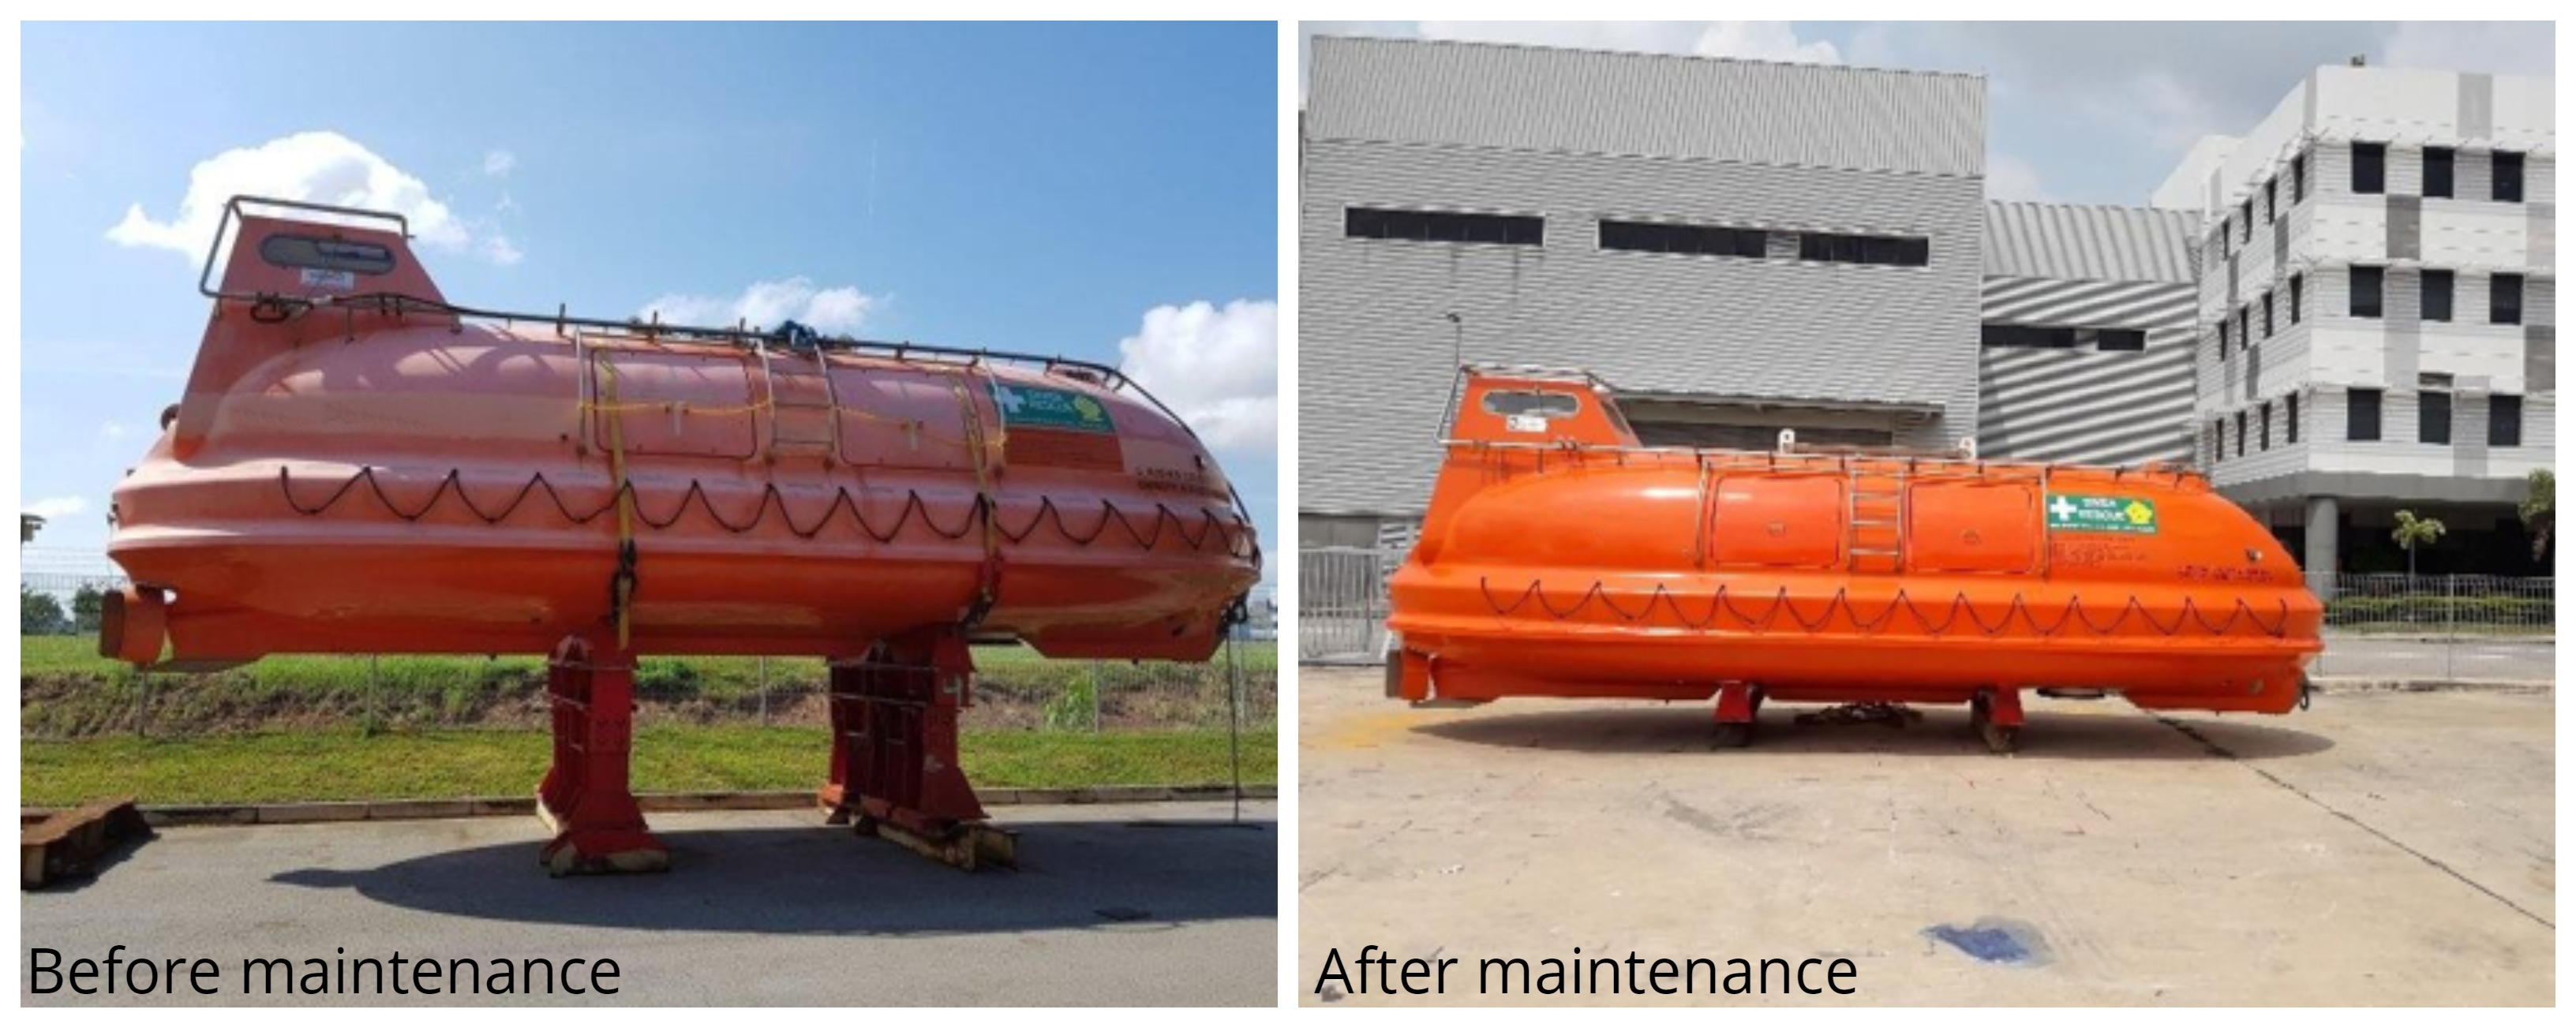 The SPHL before and after the maintenance